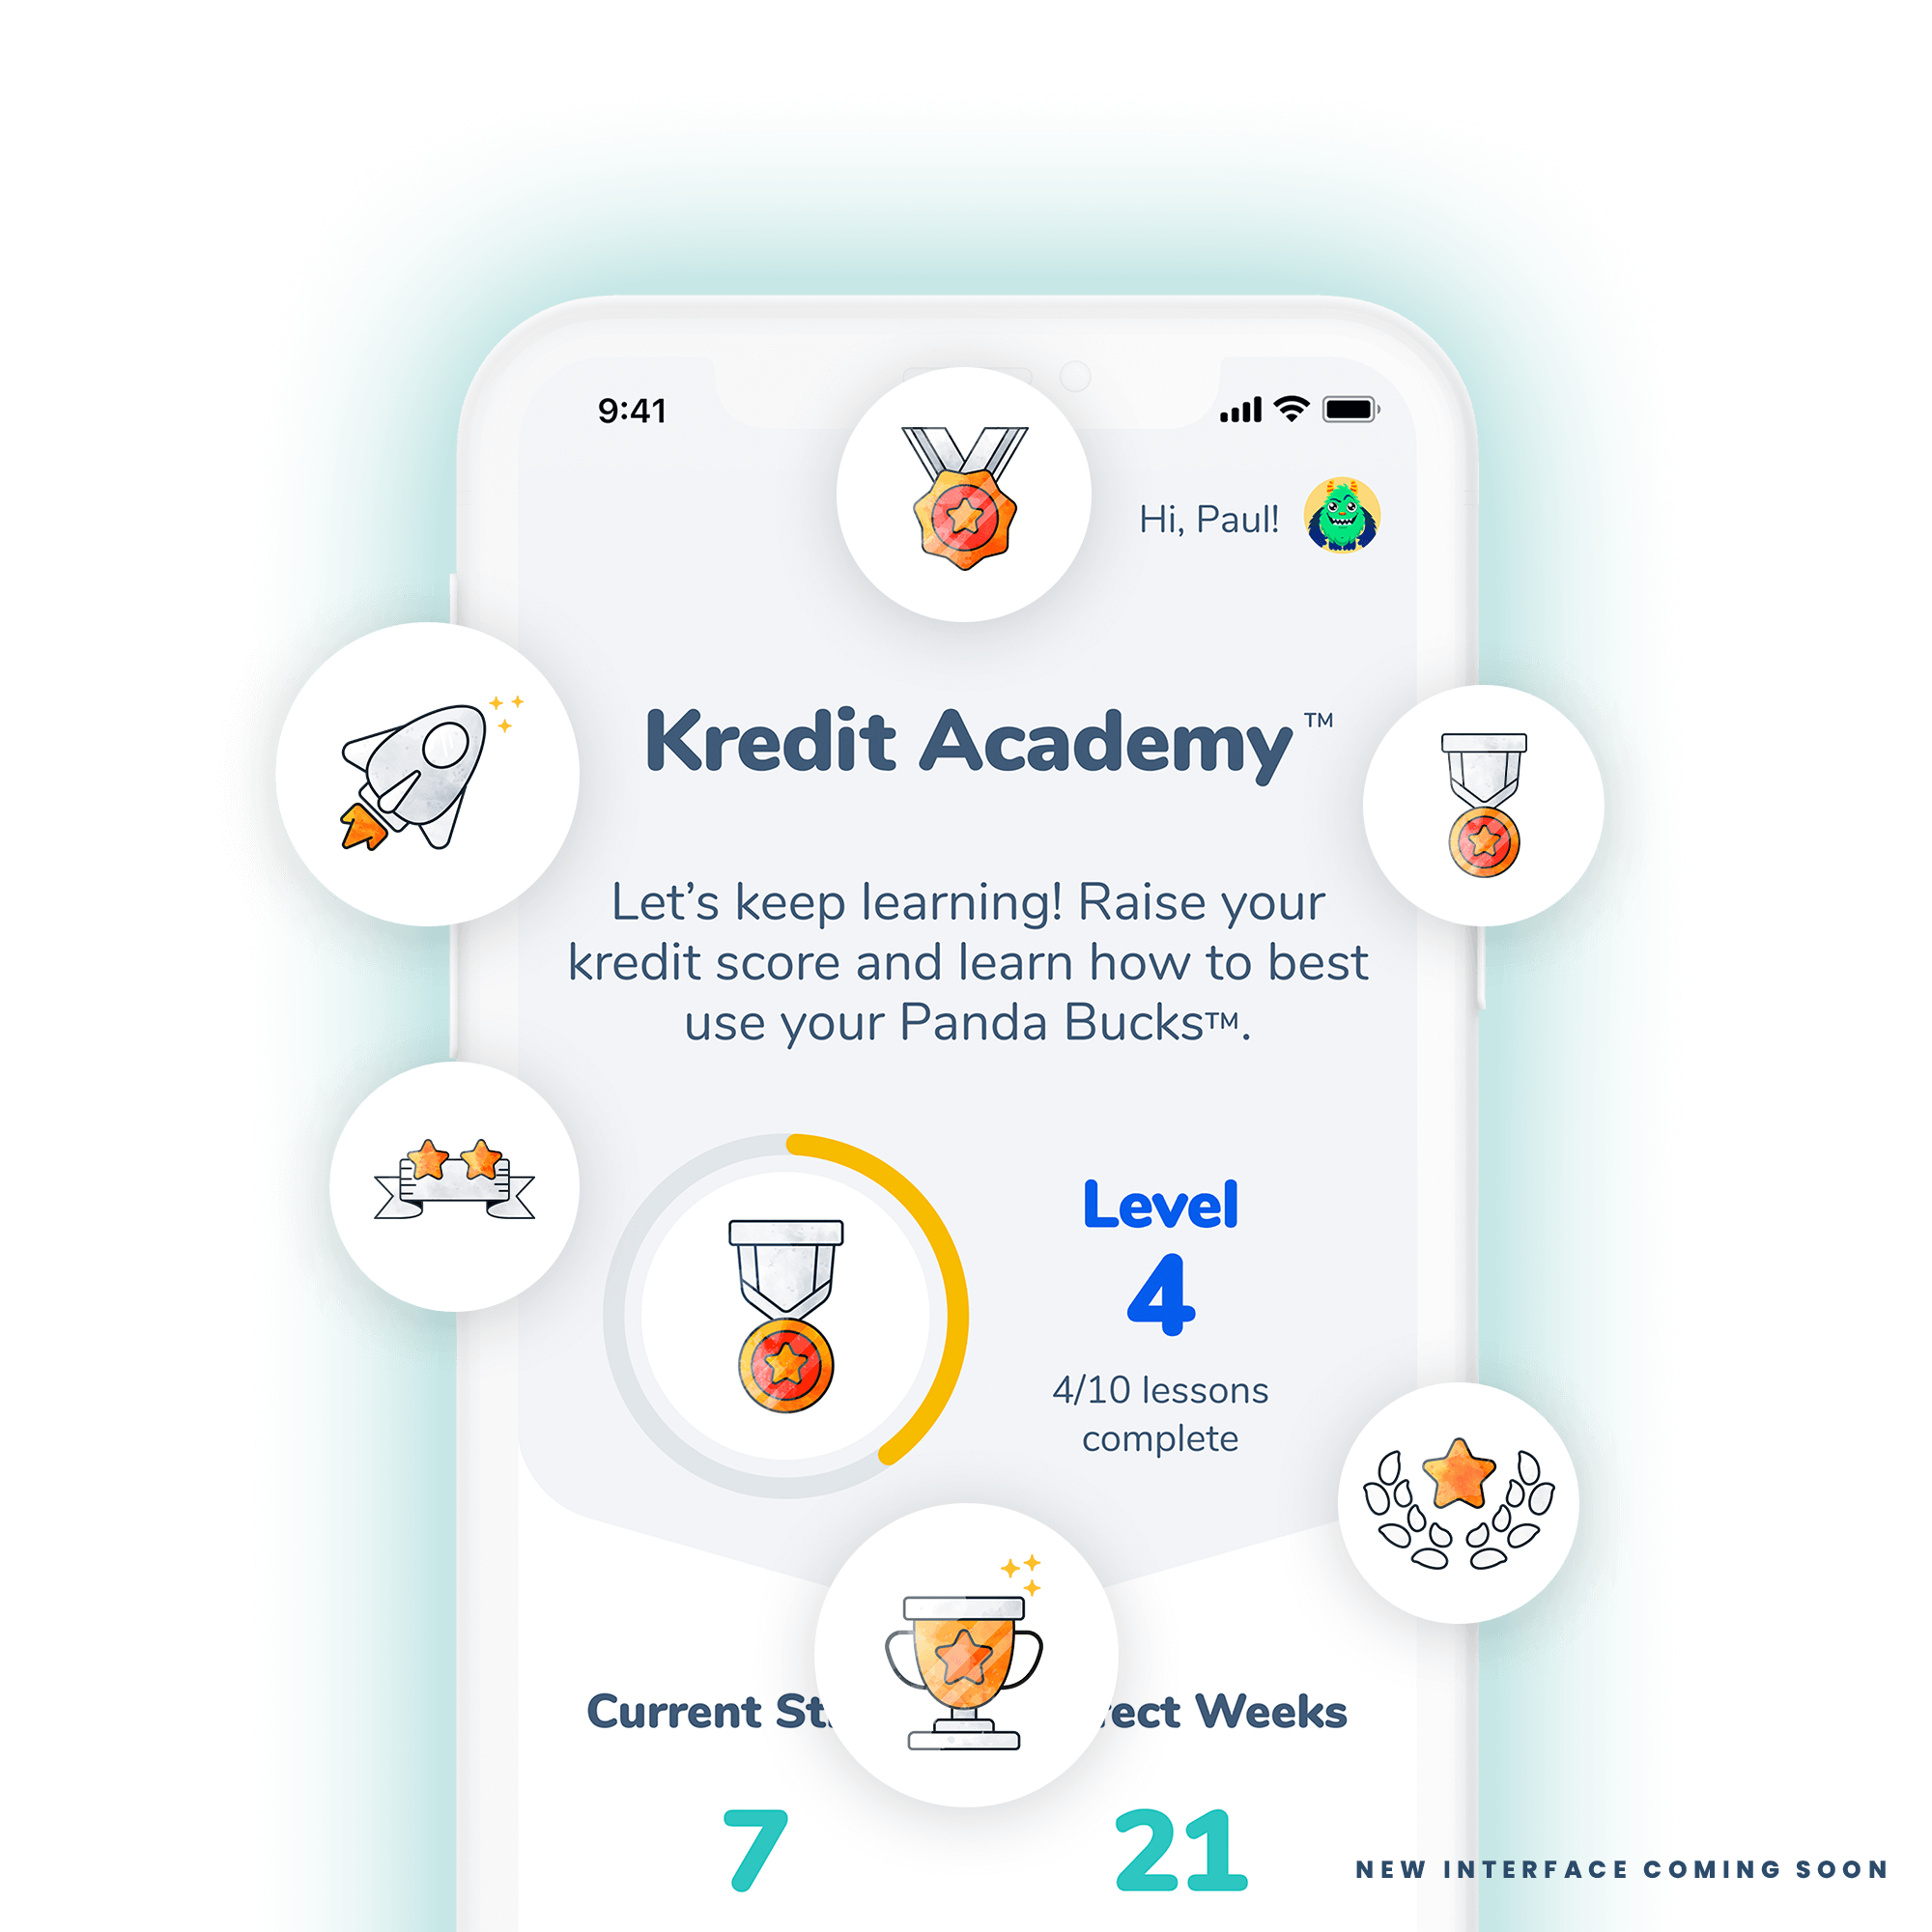 A mobile device featuring the Kiddie Kredit Academy rewards icons